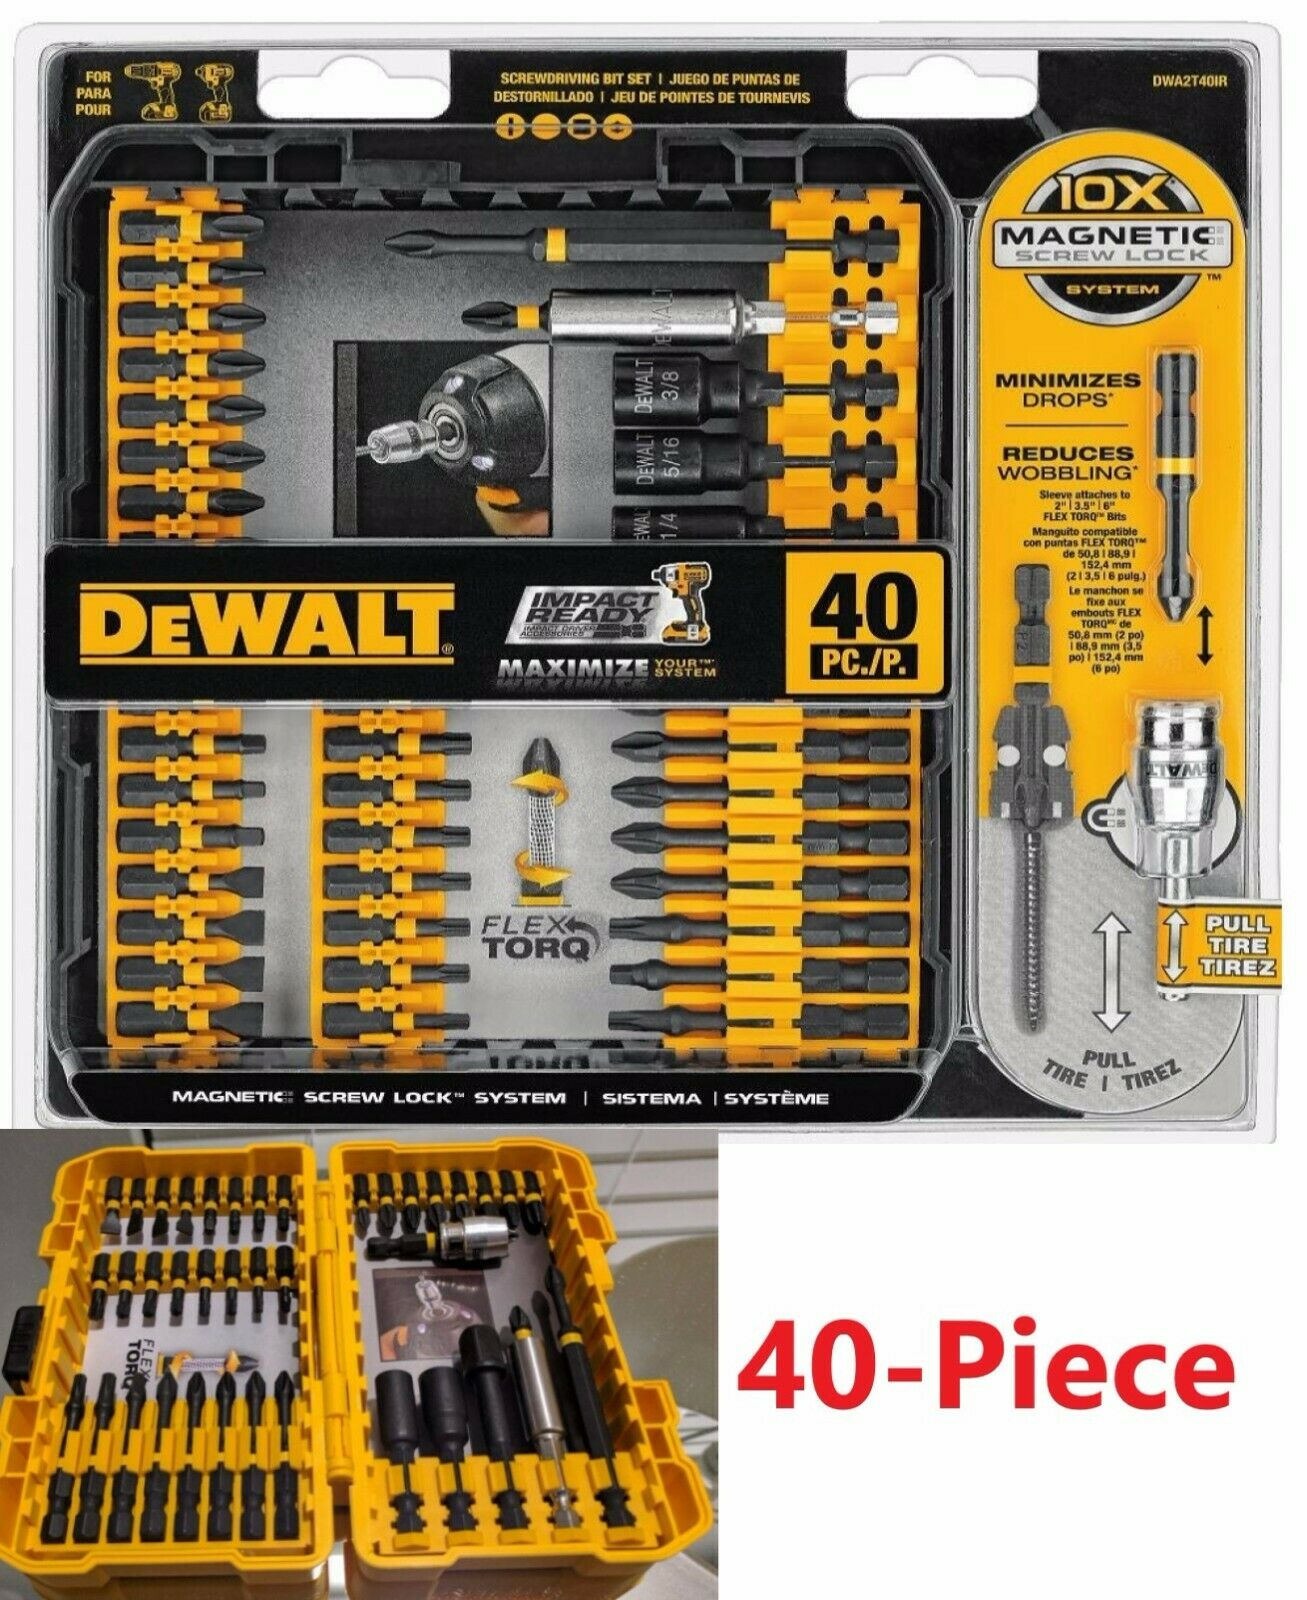 MAGNETIC SCREWDRIVER BIT SET Impact Ready Drill Driver Bits